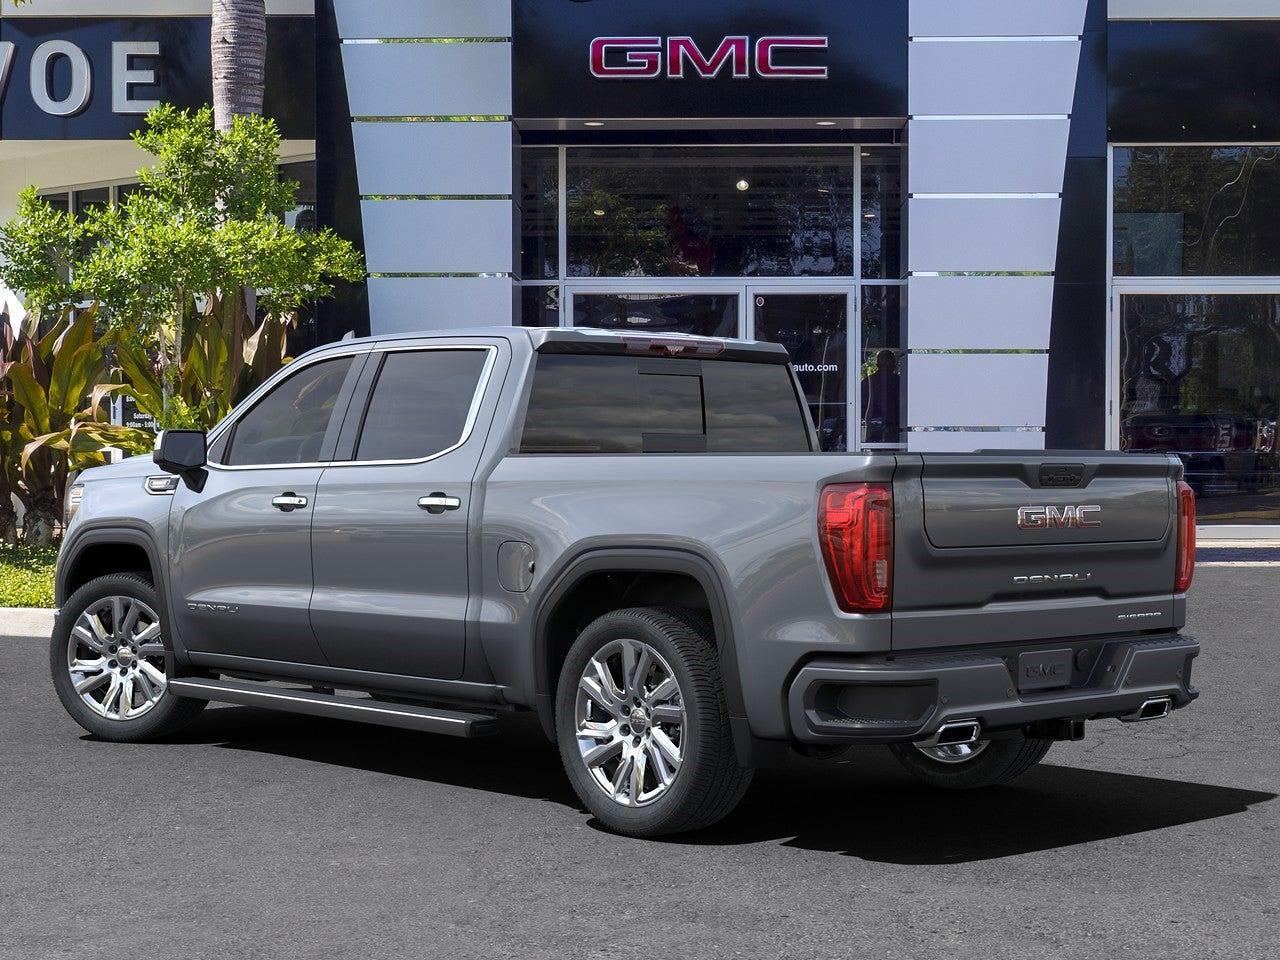 2021 GMC Sierra 1500 Crew Cab 4x2, Pickup #T21147 - photo 6